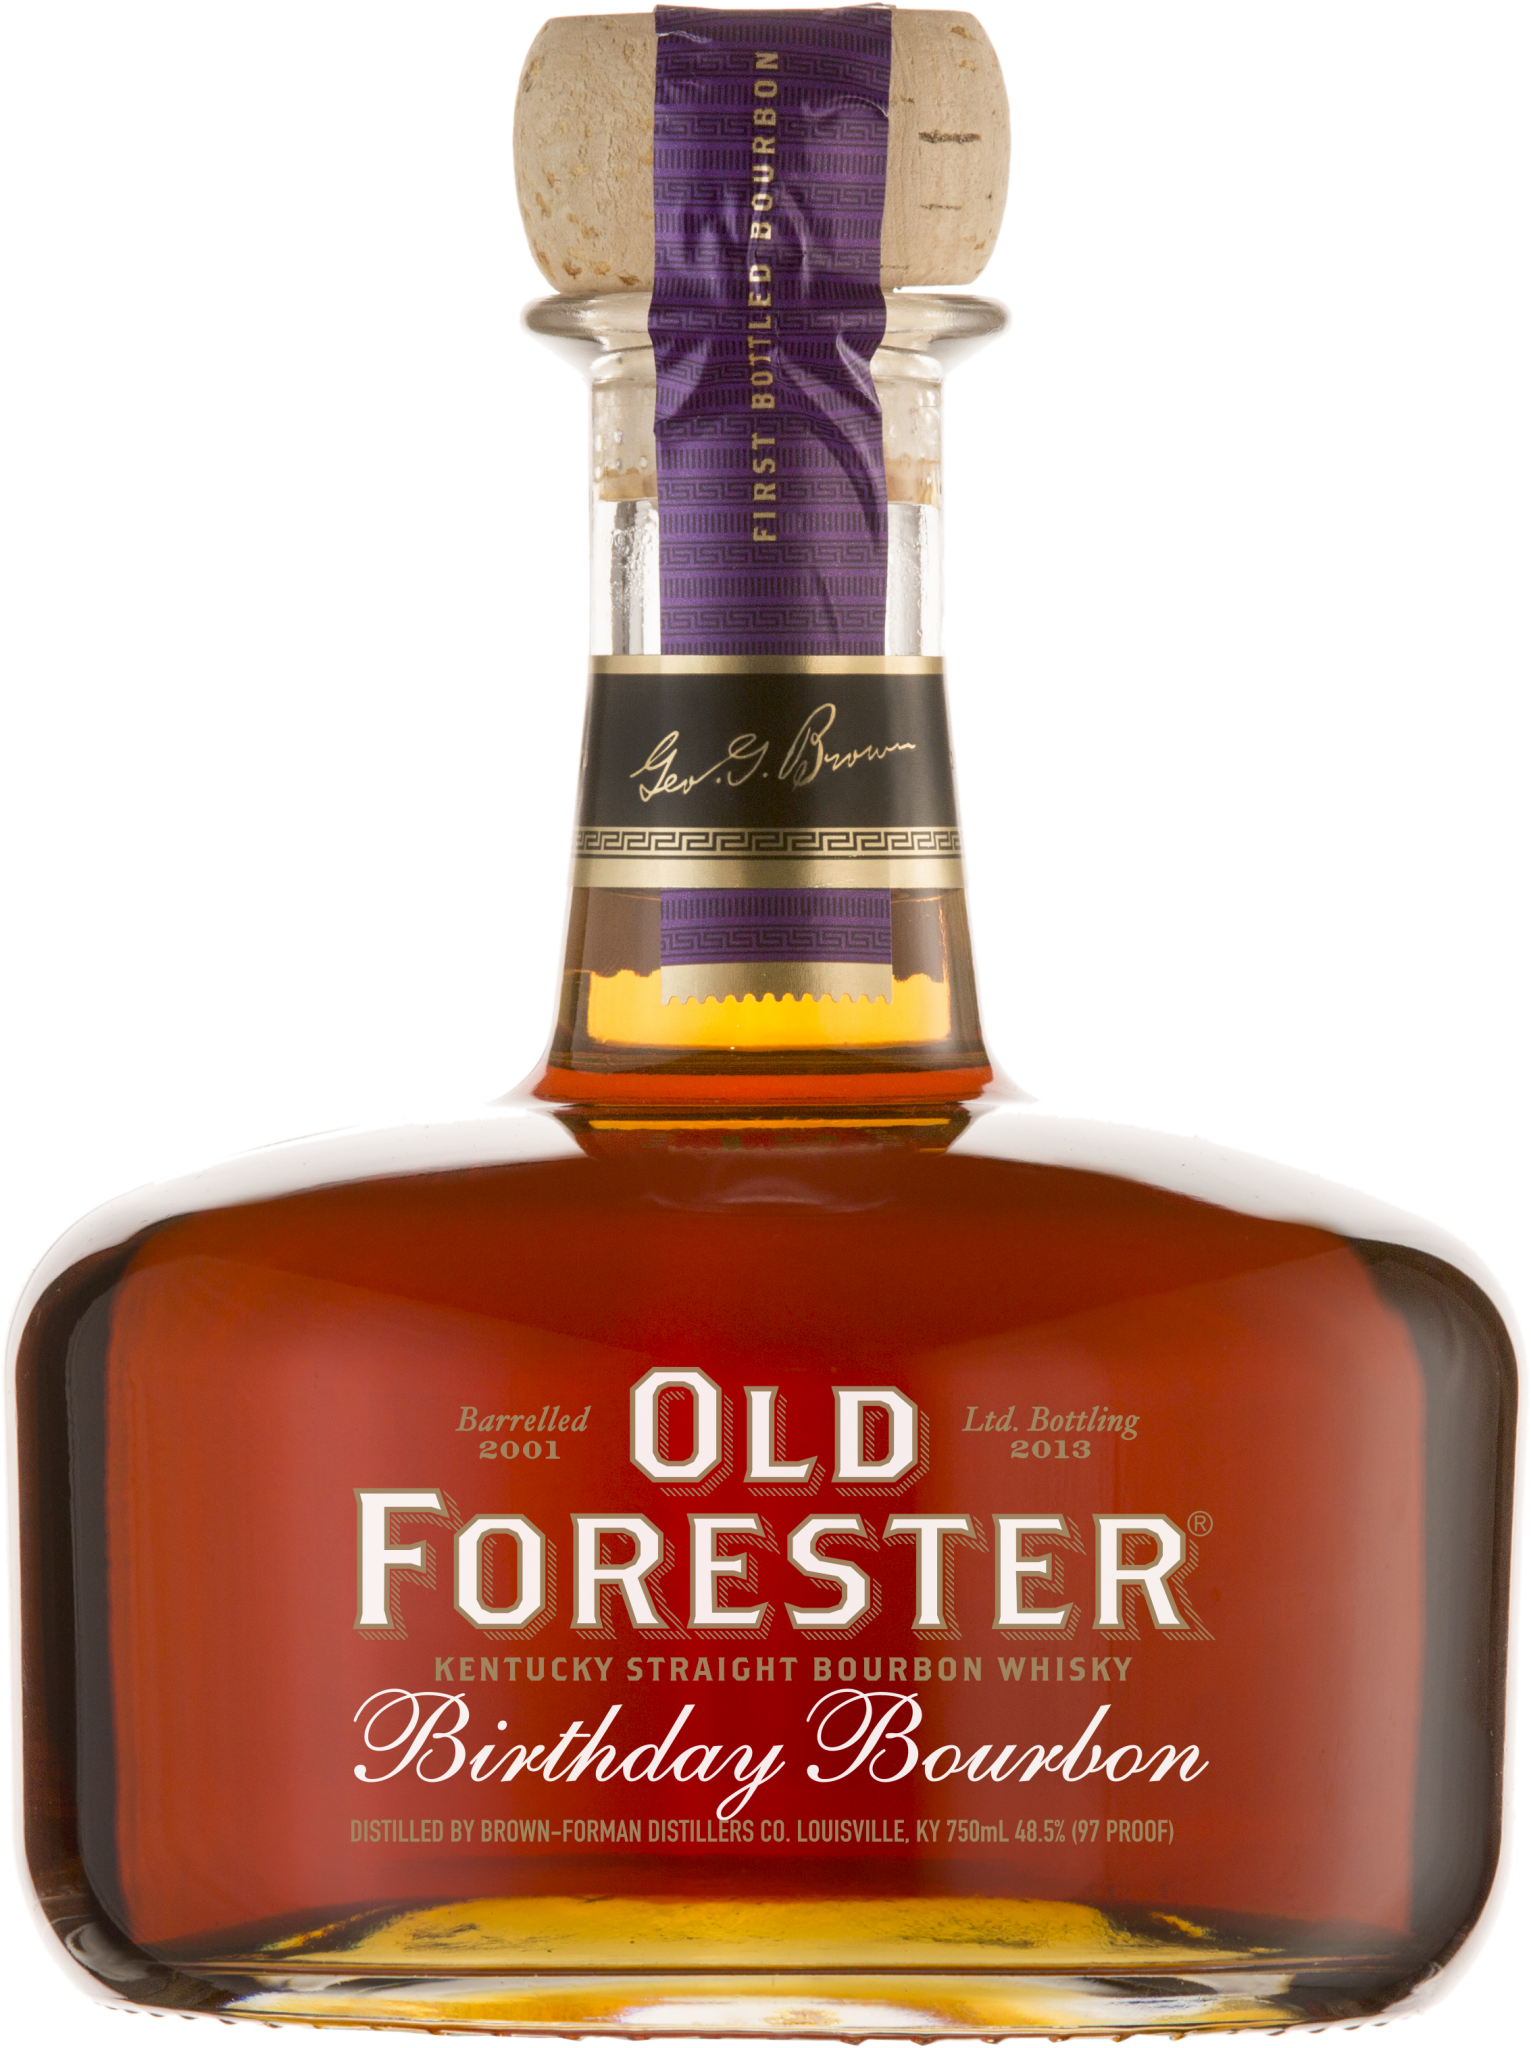 A bottle of Old Forester 2013 Birthday Bourbon on a black background.